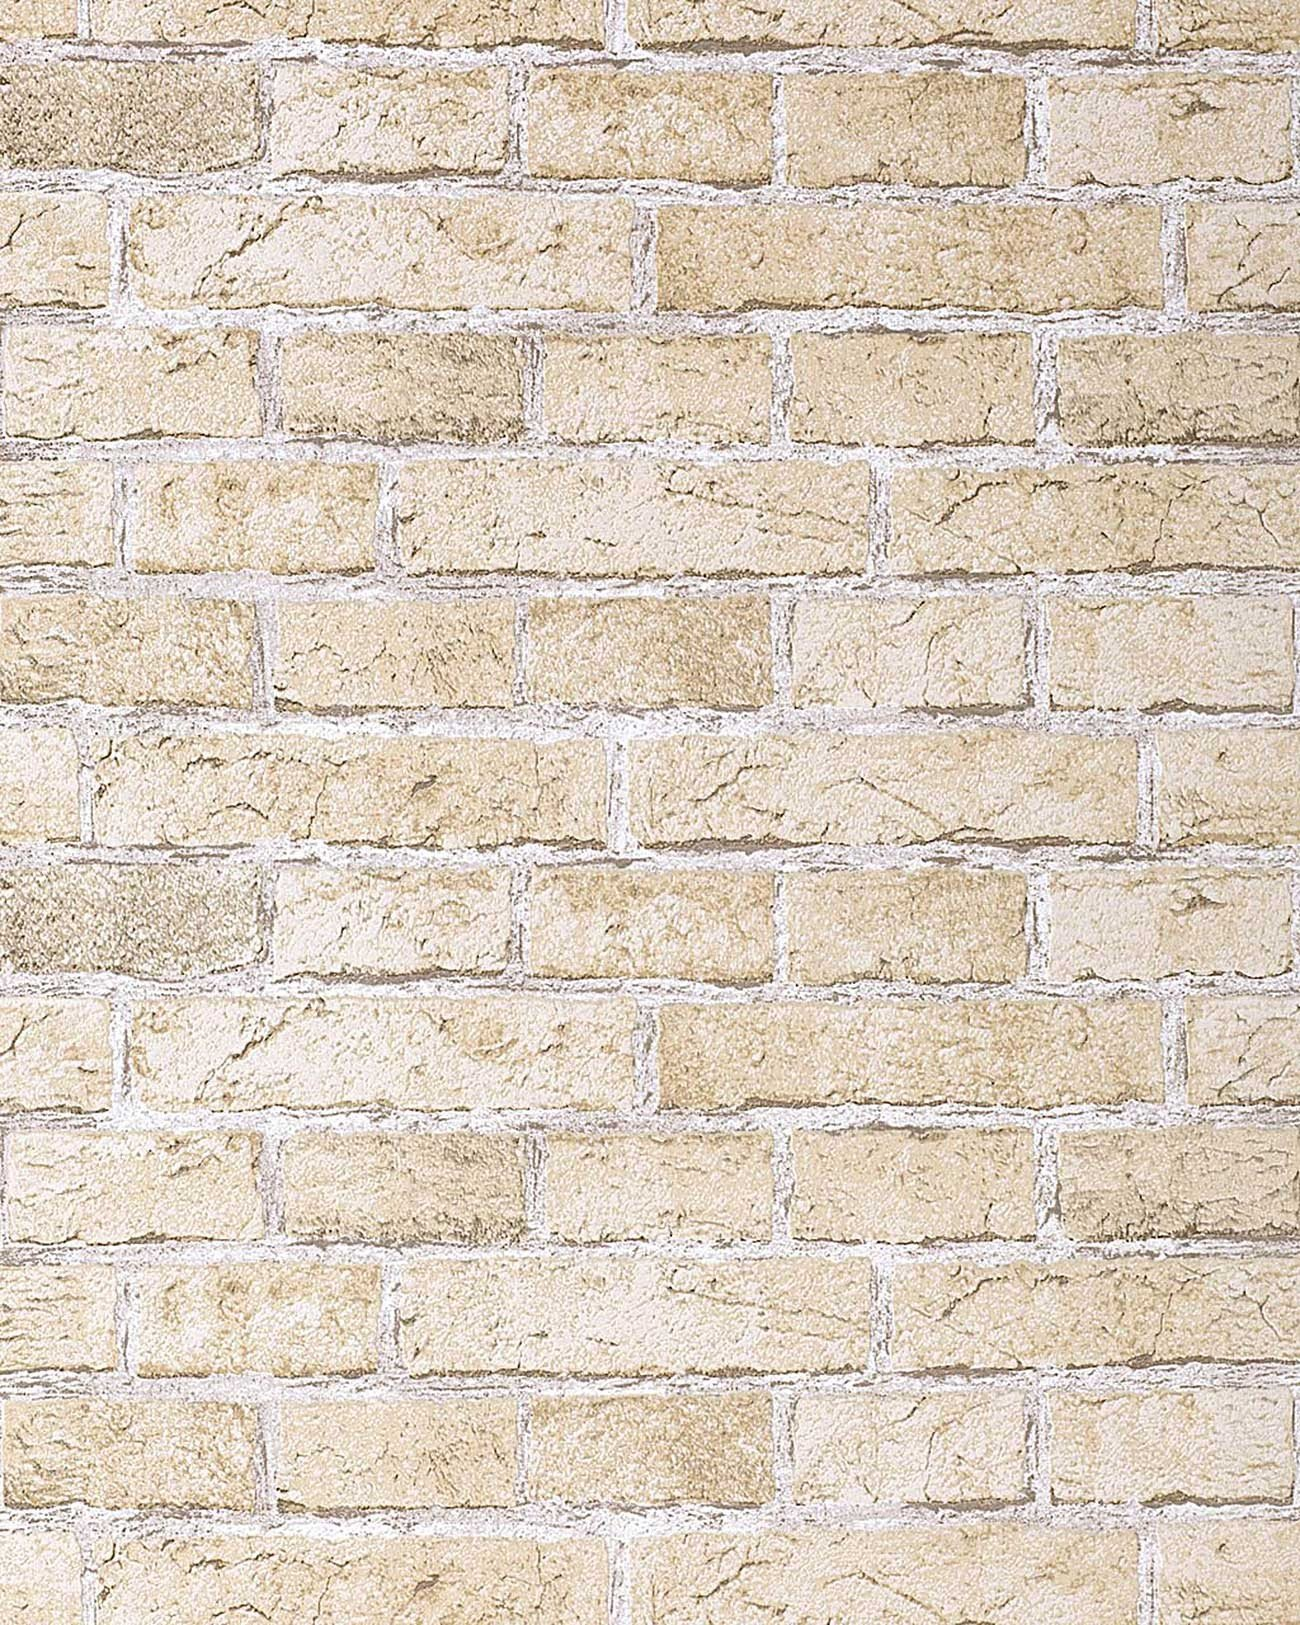 20 Rustic design brick wallpaper decor vintage stone look sand beige 1300x1625